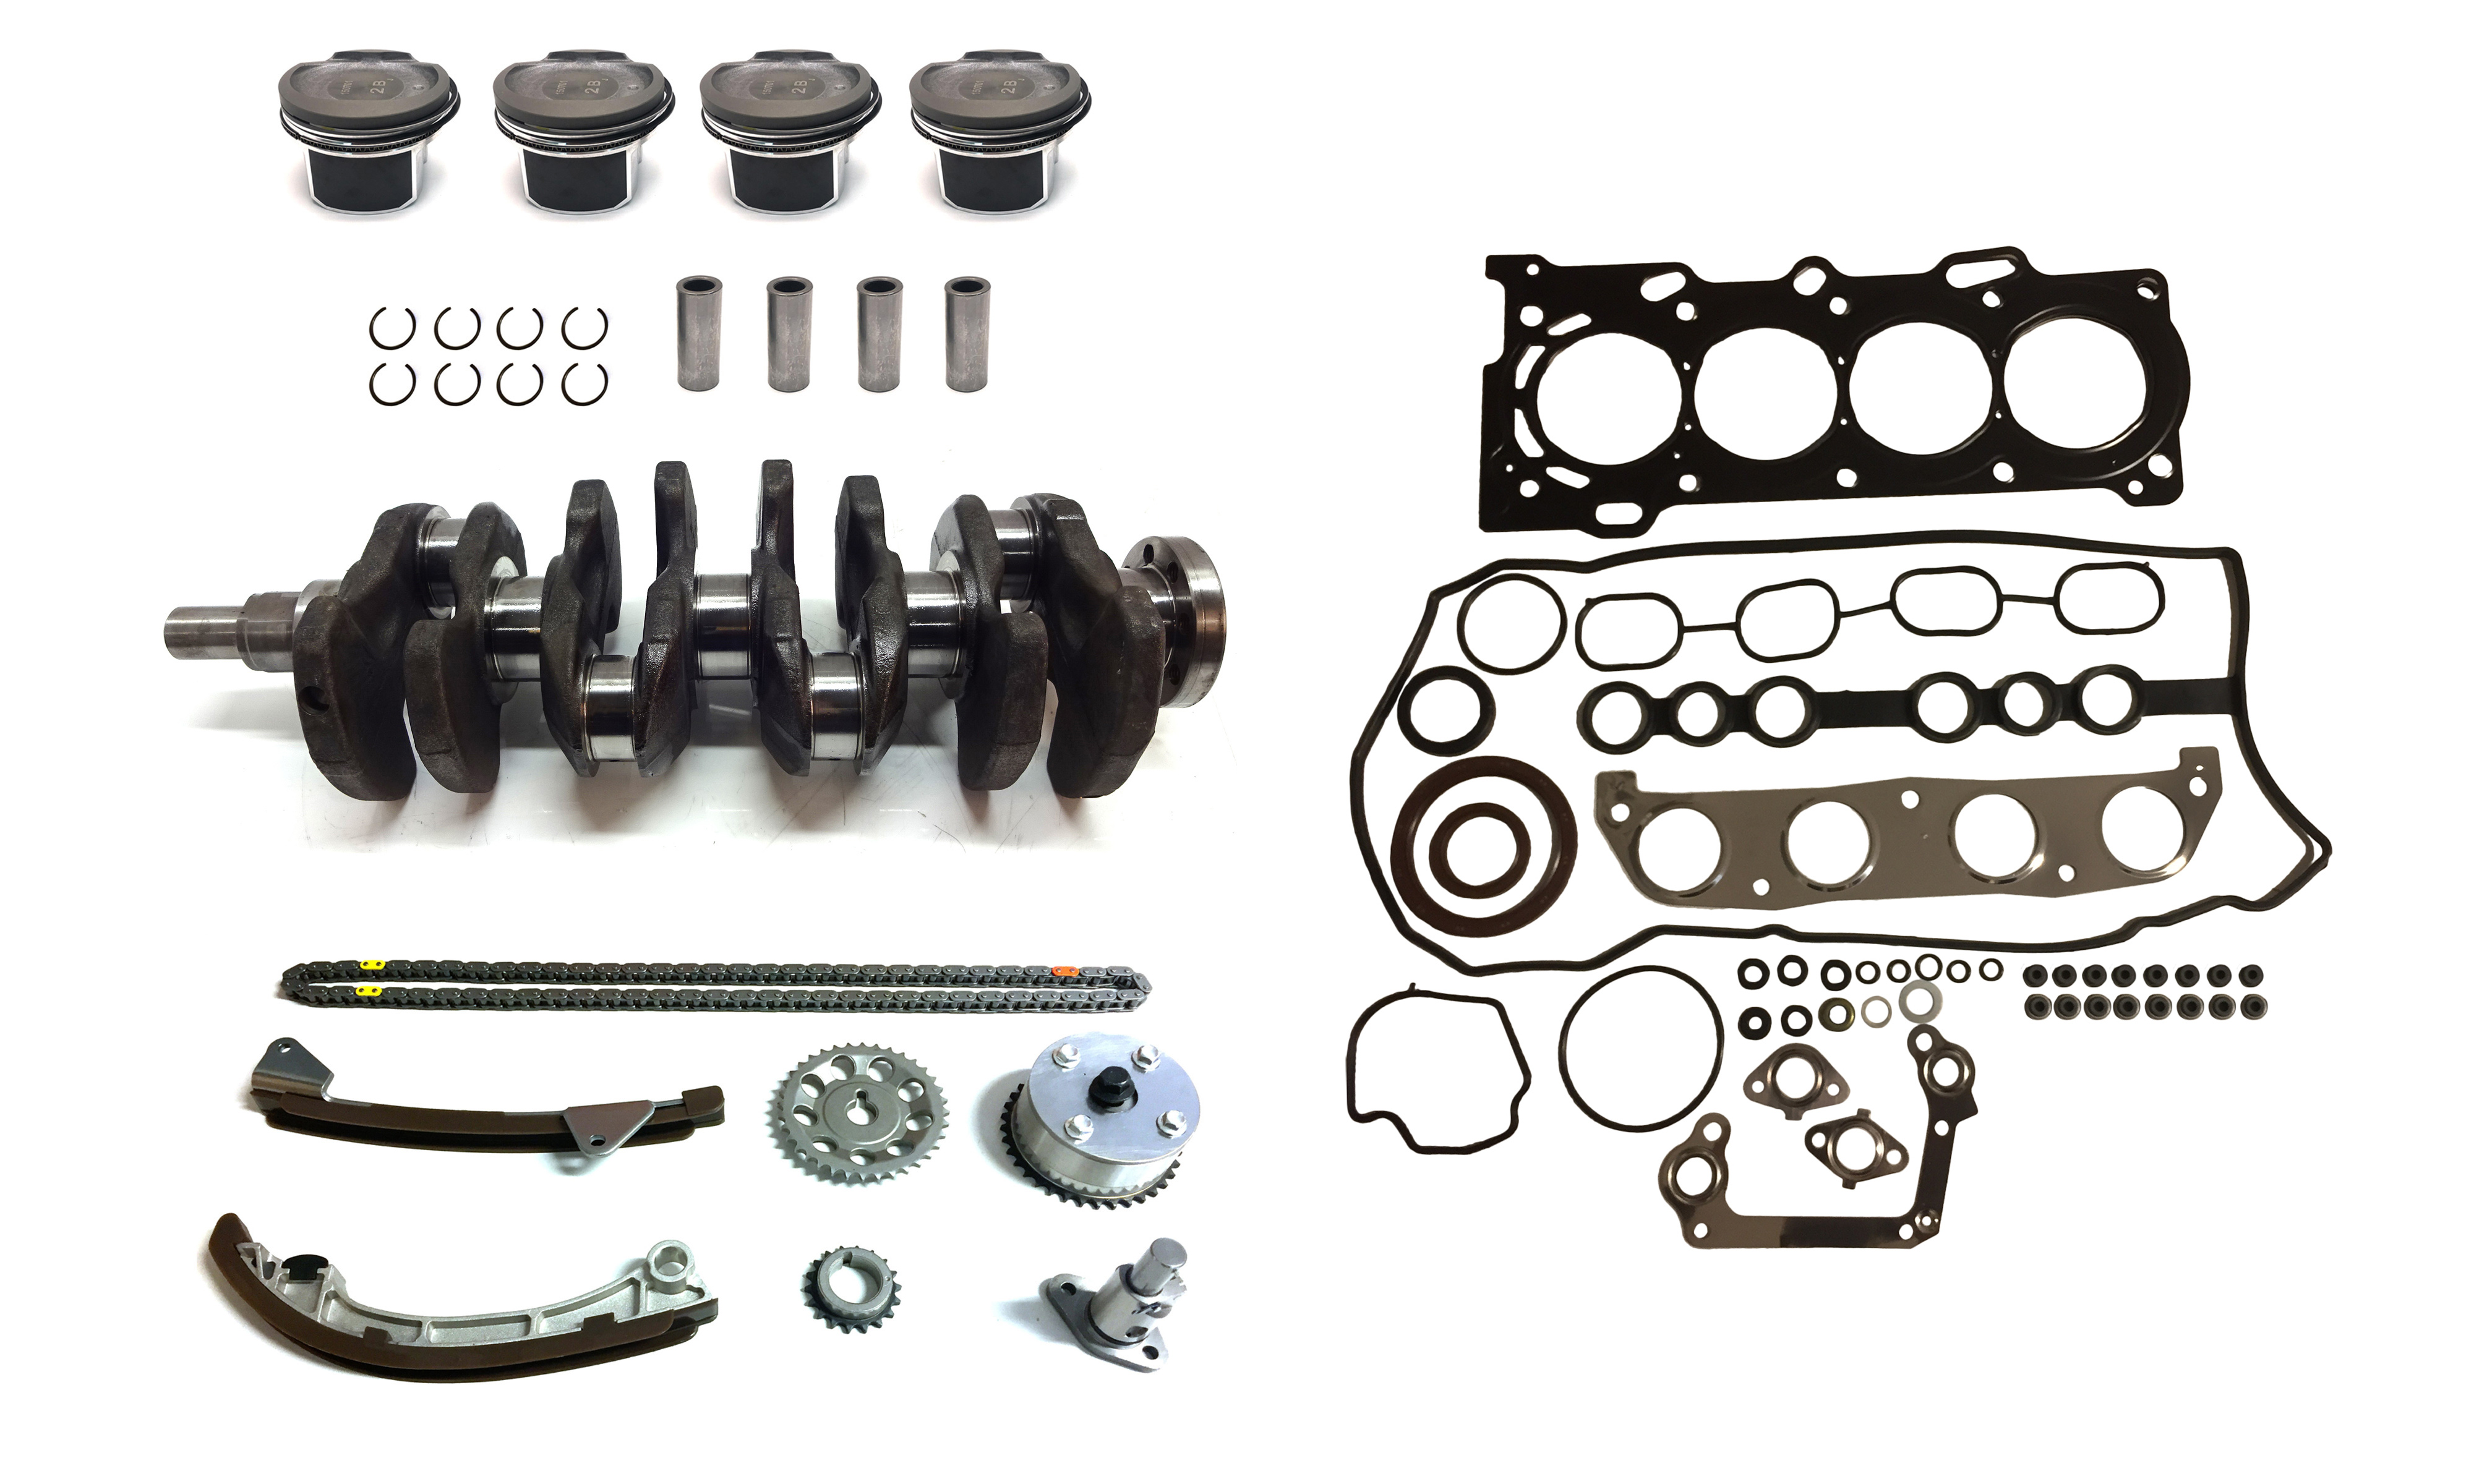 Crankshaft Piston Timing chain kit for Toyota Avensis Caldina are 1.8 VVT-i 1ZZ-FE 1ZZ